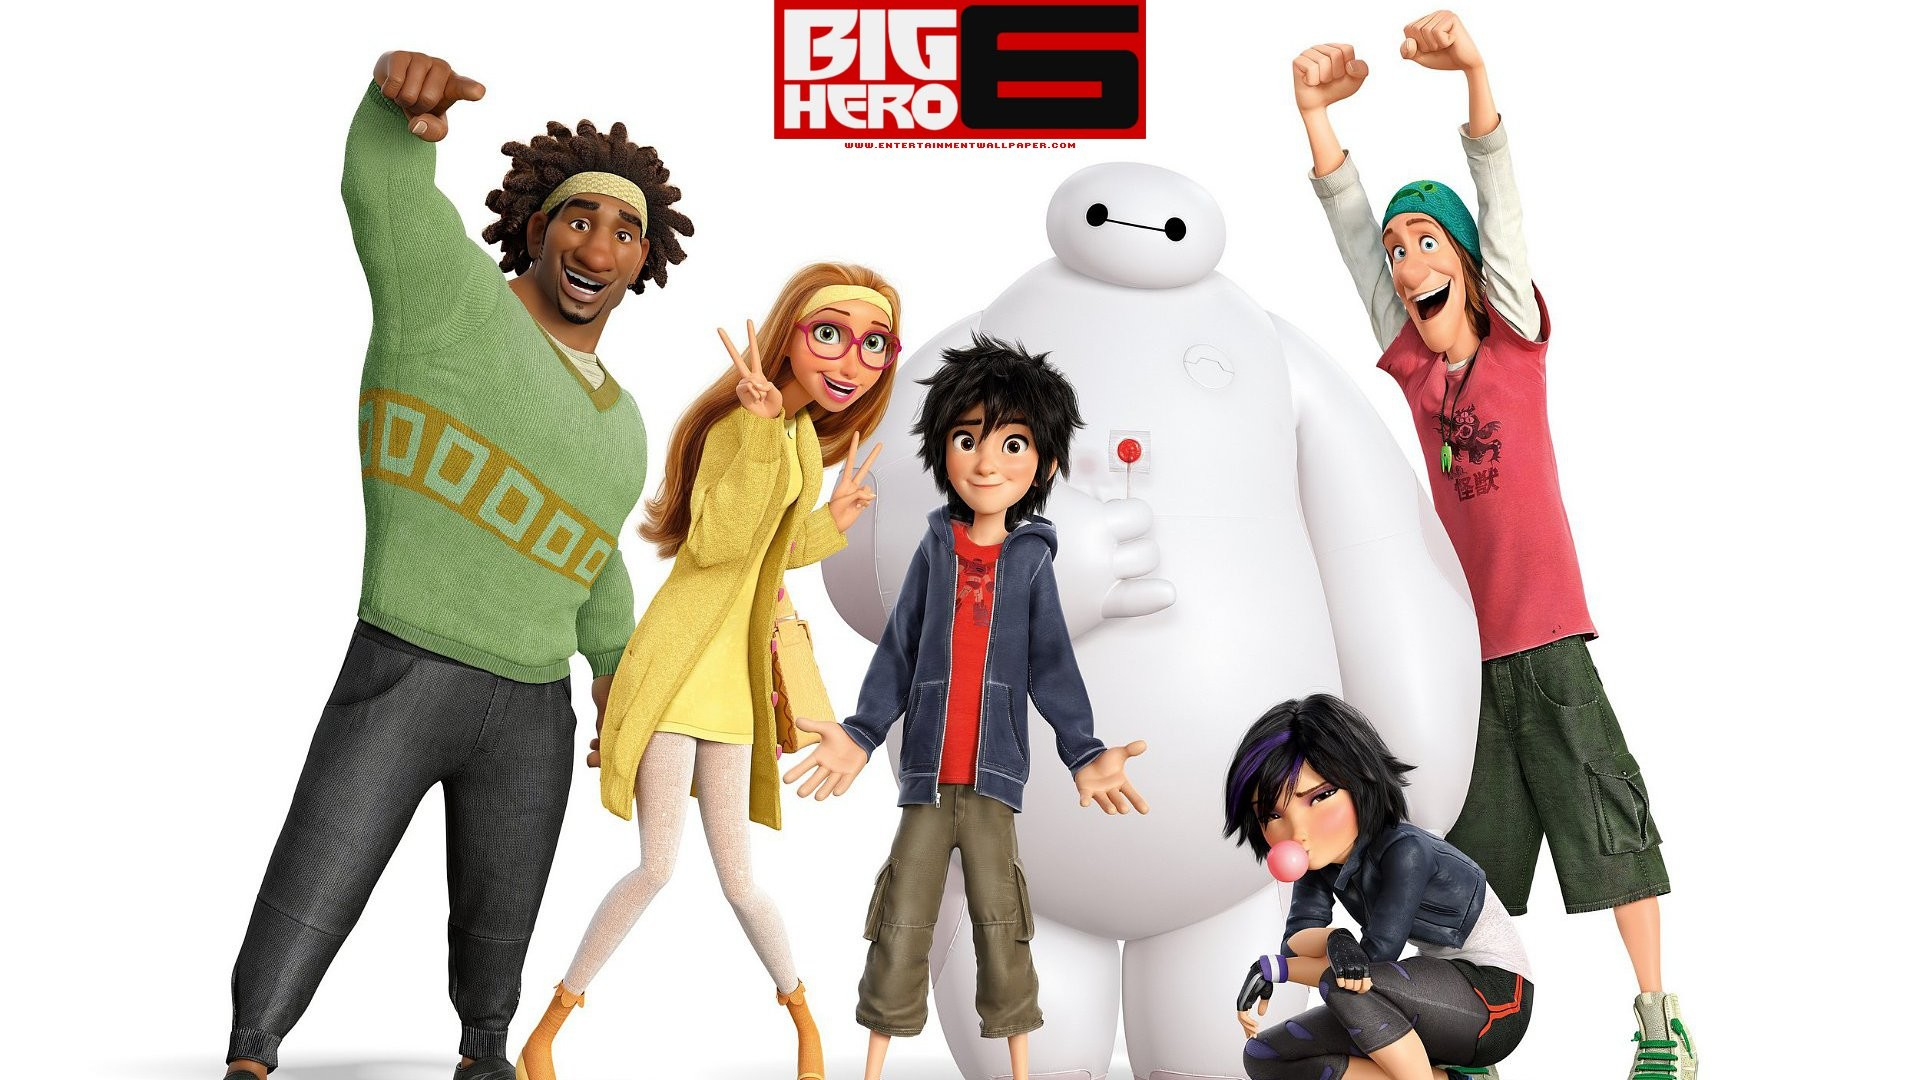 Res: 1920x1080, Entertainment Wallpapers.com images Big Hero 6 HD wallpaper and background  photos